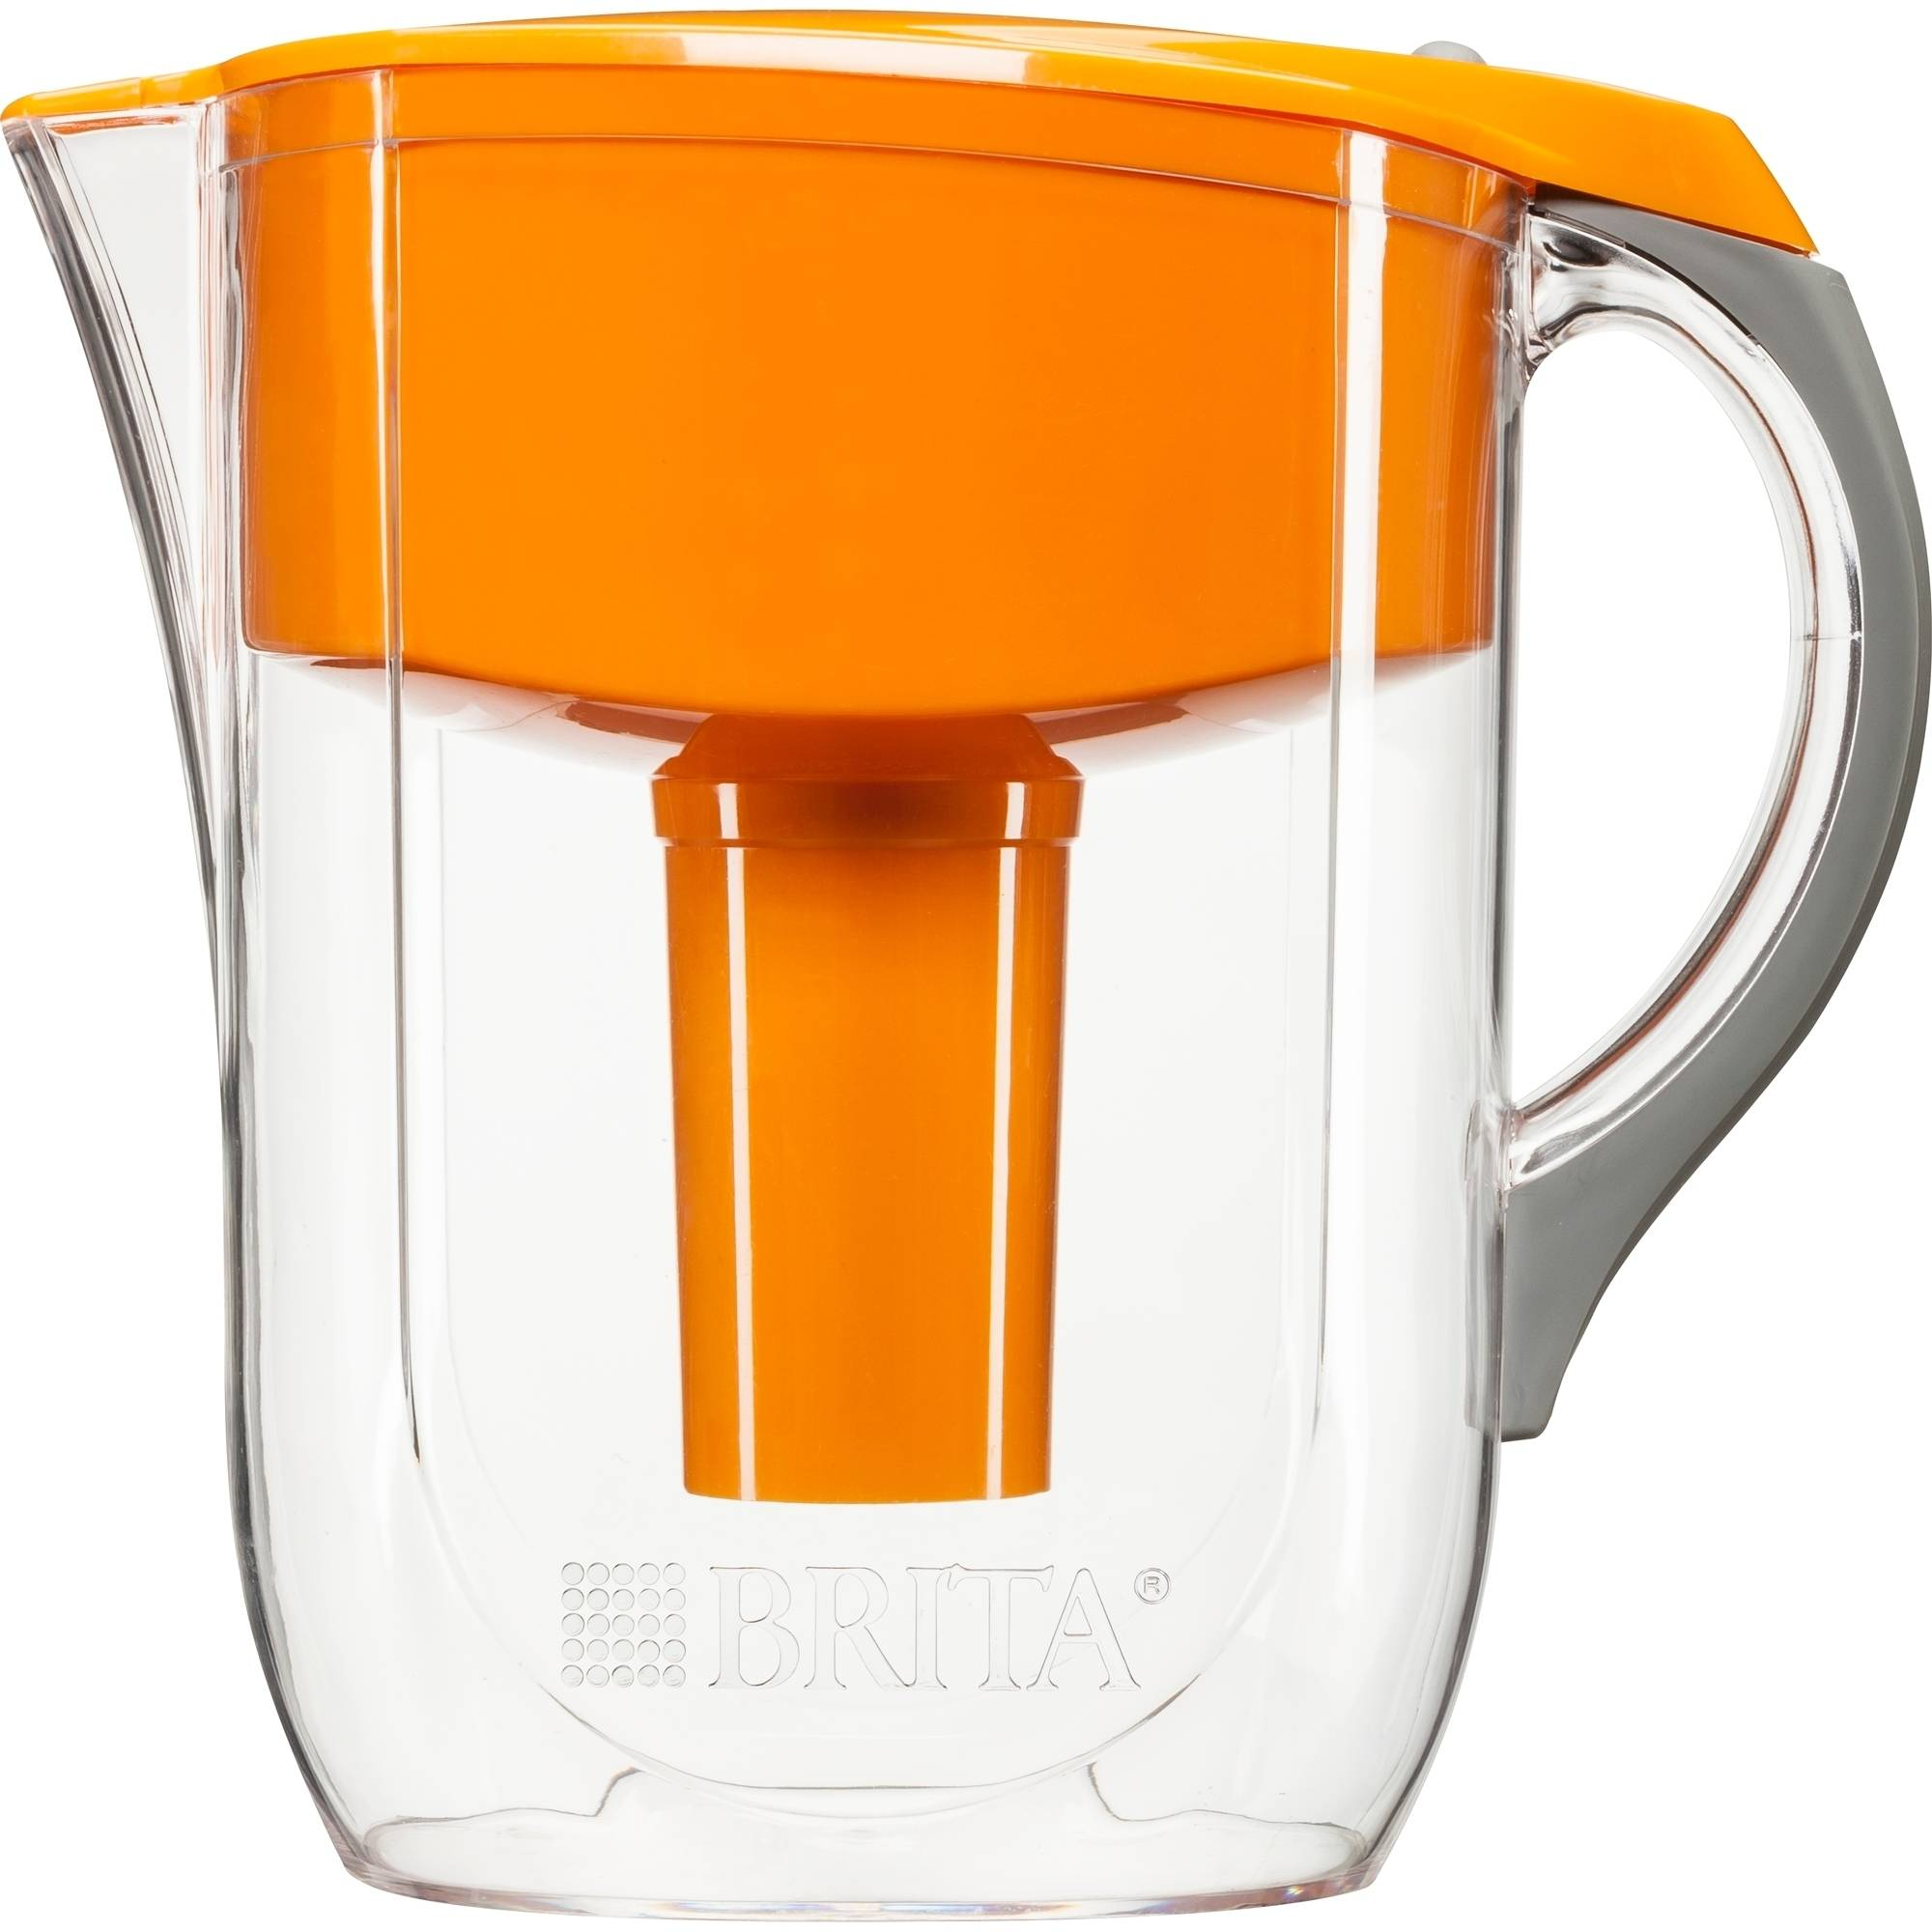 Brita Grand Water Filtration Pitcher, Orange, BPA Free